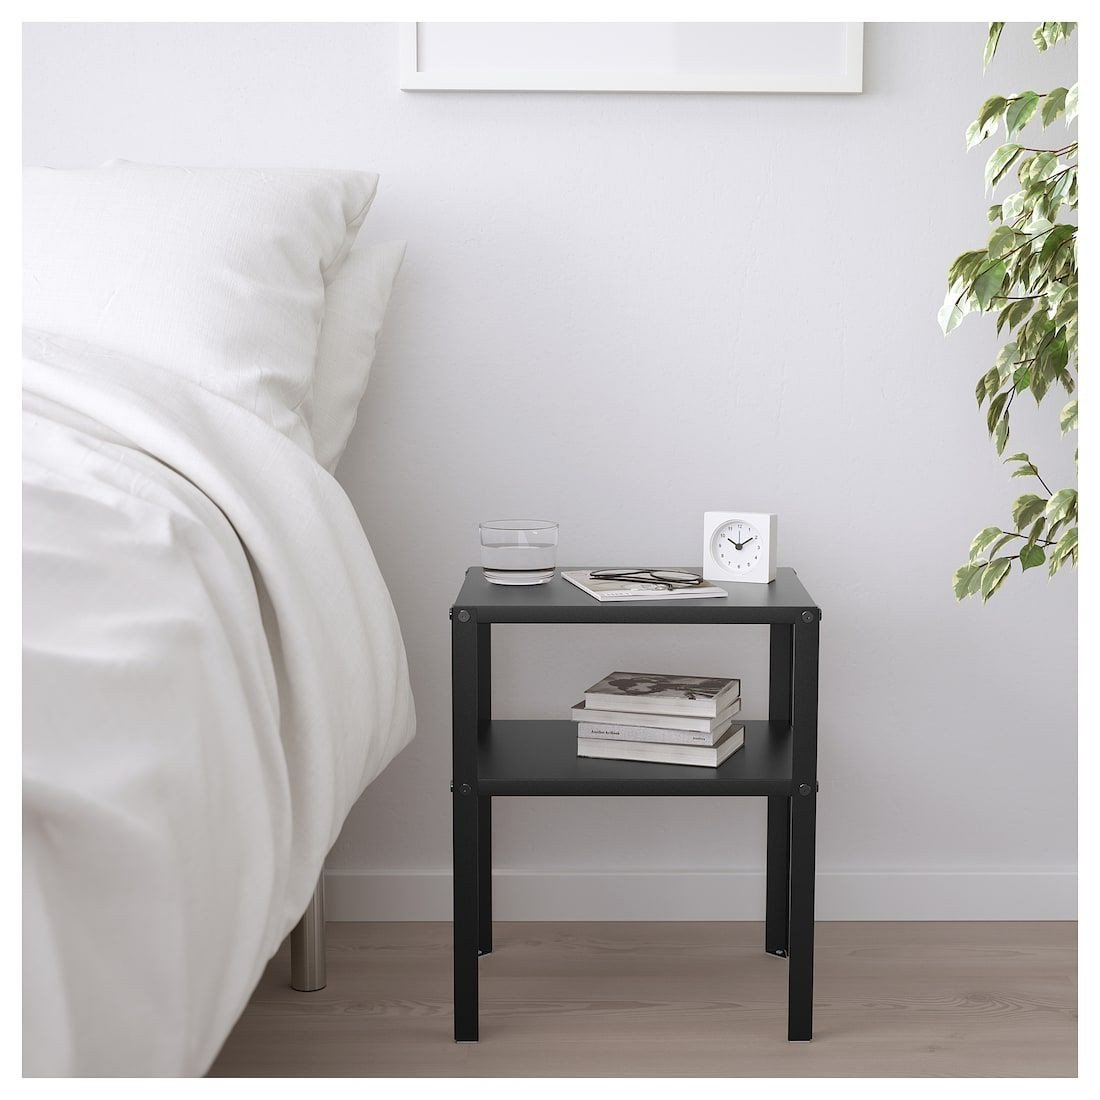 Black Bedroom Side Table Best Of Ikea Knarrevik Black Nightstand In 2019